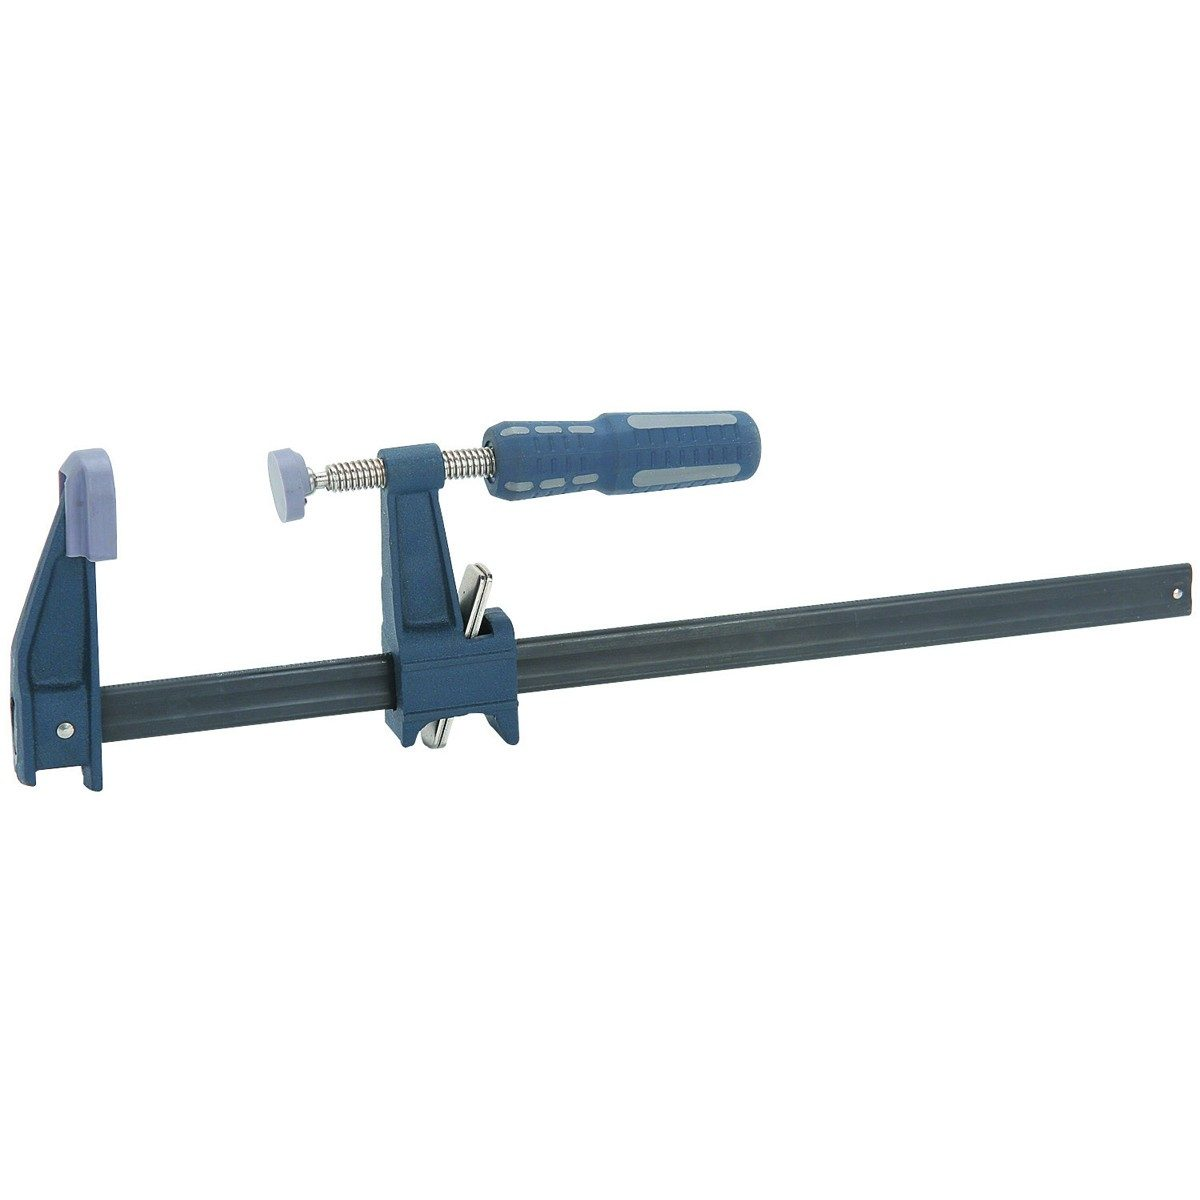 12 in. Quick Release Bar Clamp